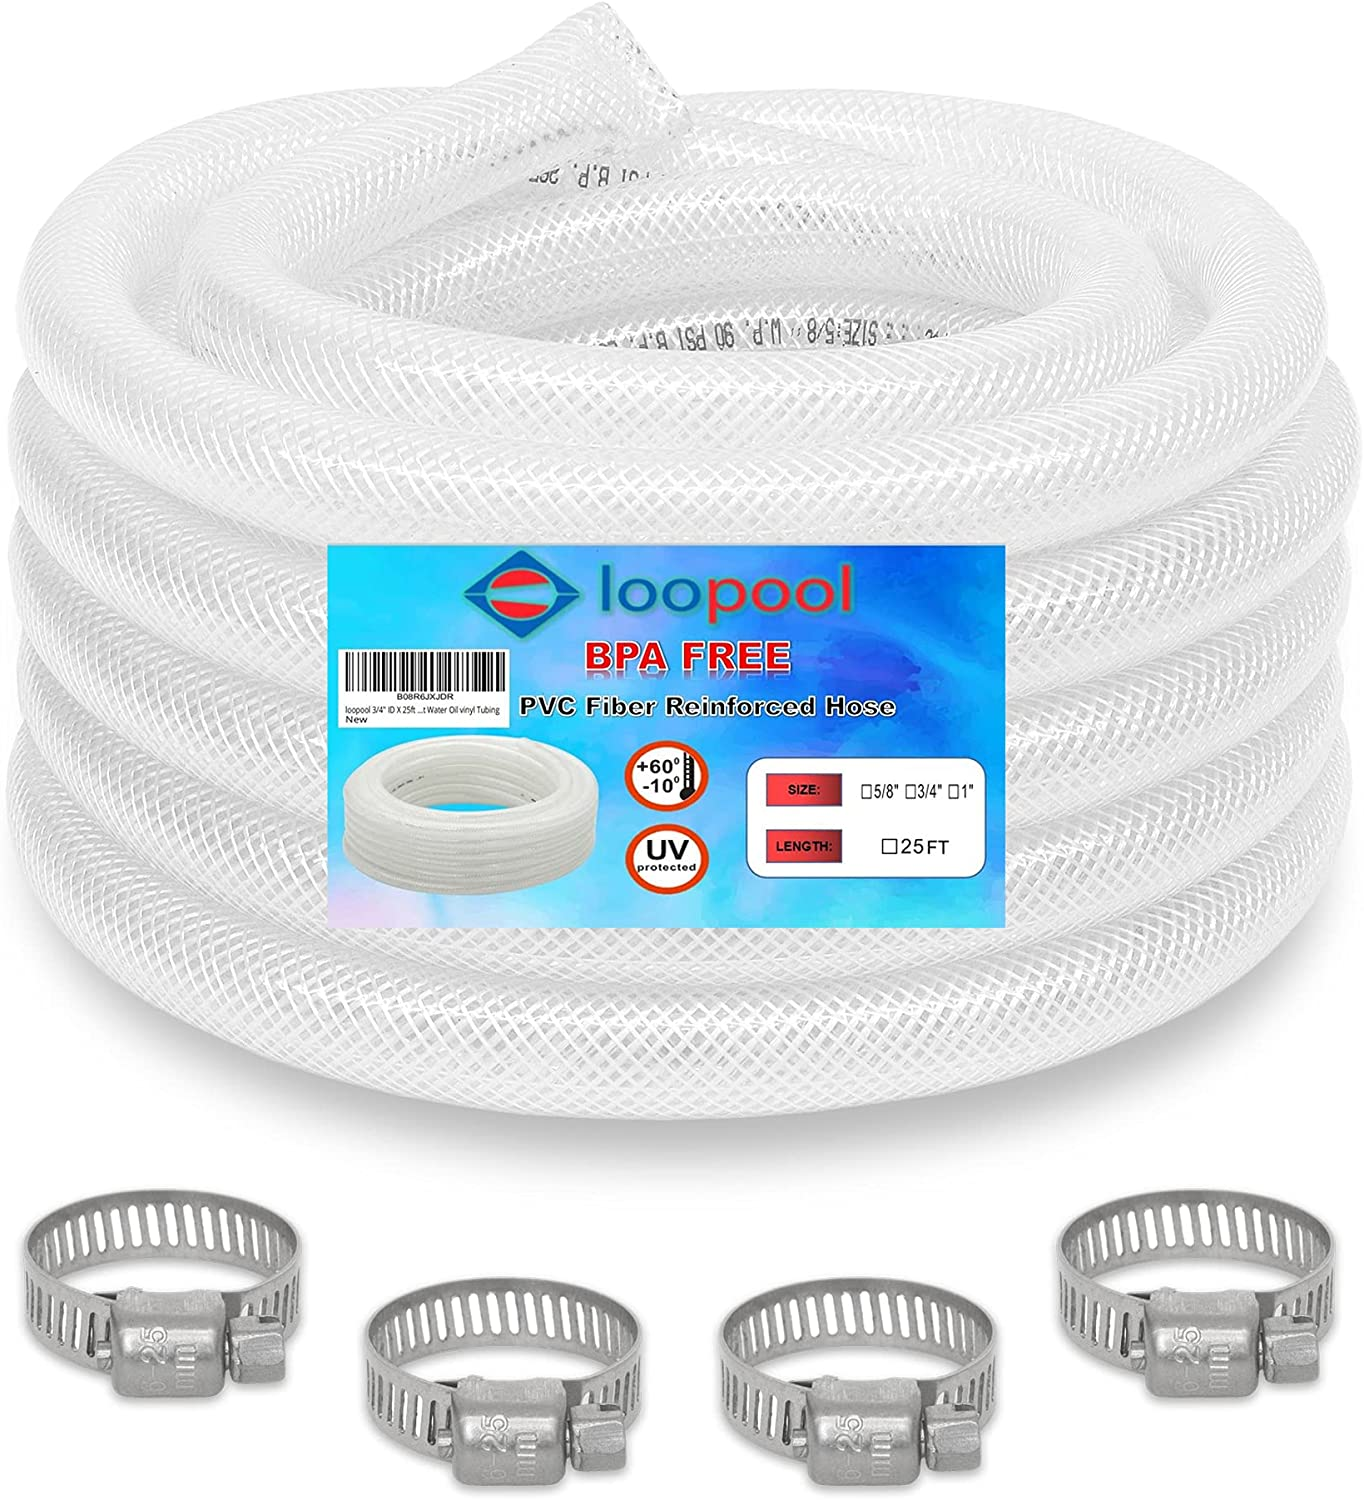 loopool Food Grade Hose BPA Free, High Pressure Braided Clear PVC Flexible Tubing, Heavy Duty Reinforced with 4 x clamps Included, Chemical Resistant Water Oil vinyl Tubing (25 FT, 1